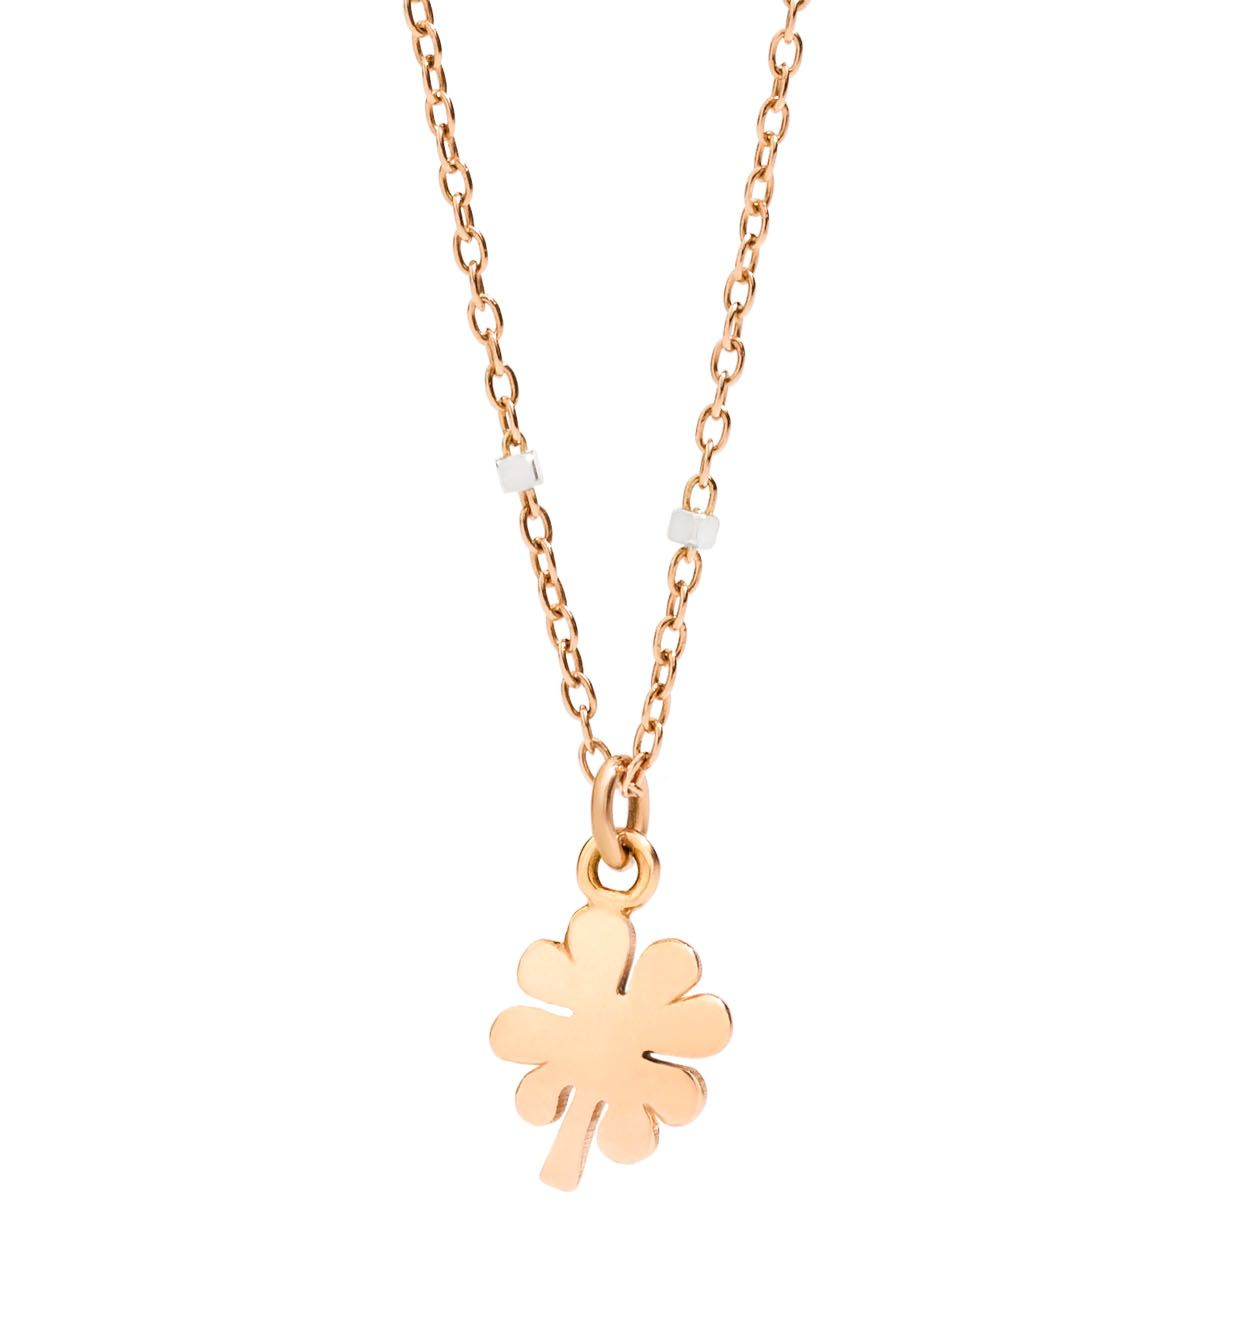 DoDo Mini Four Leaf Clover Necklace in 9k Rose Gold and 9k White Gold - Orsini Jewellers NZ